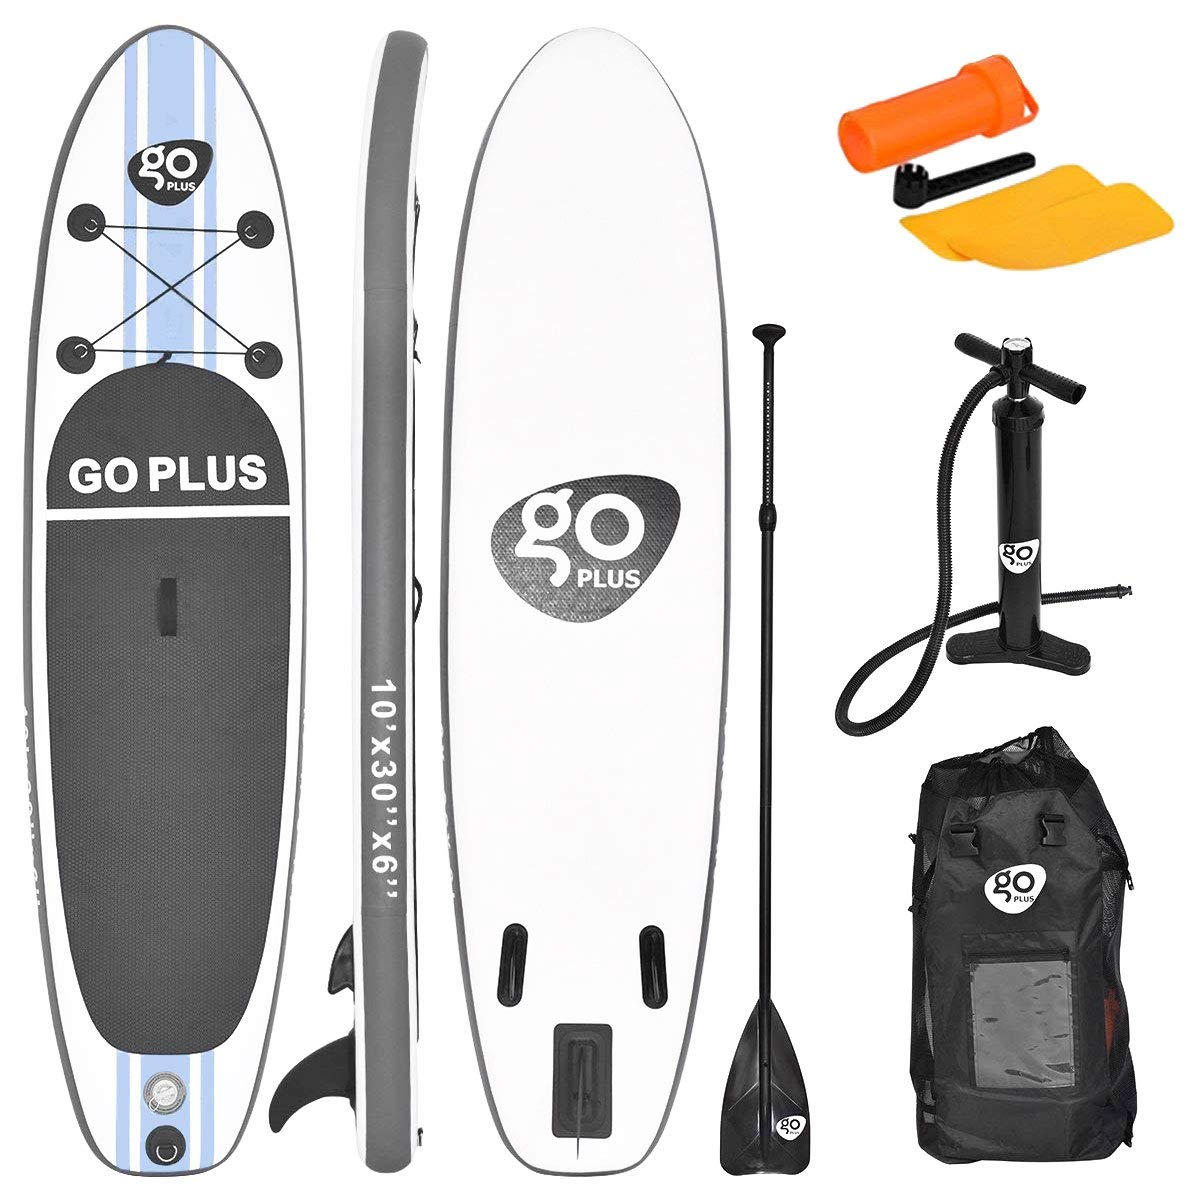 Goplus Inflatable Stand up Paddle Board Surfboard SUP Board with Adjustable Paddle Carry Bag Manual Pump Repair Kit Removable Fin for All Skill Levels, 6'' Thick (White, 10FT)